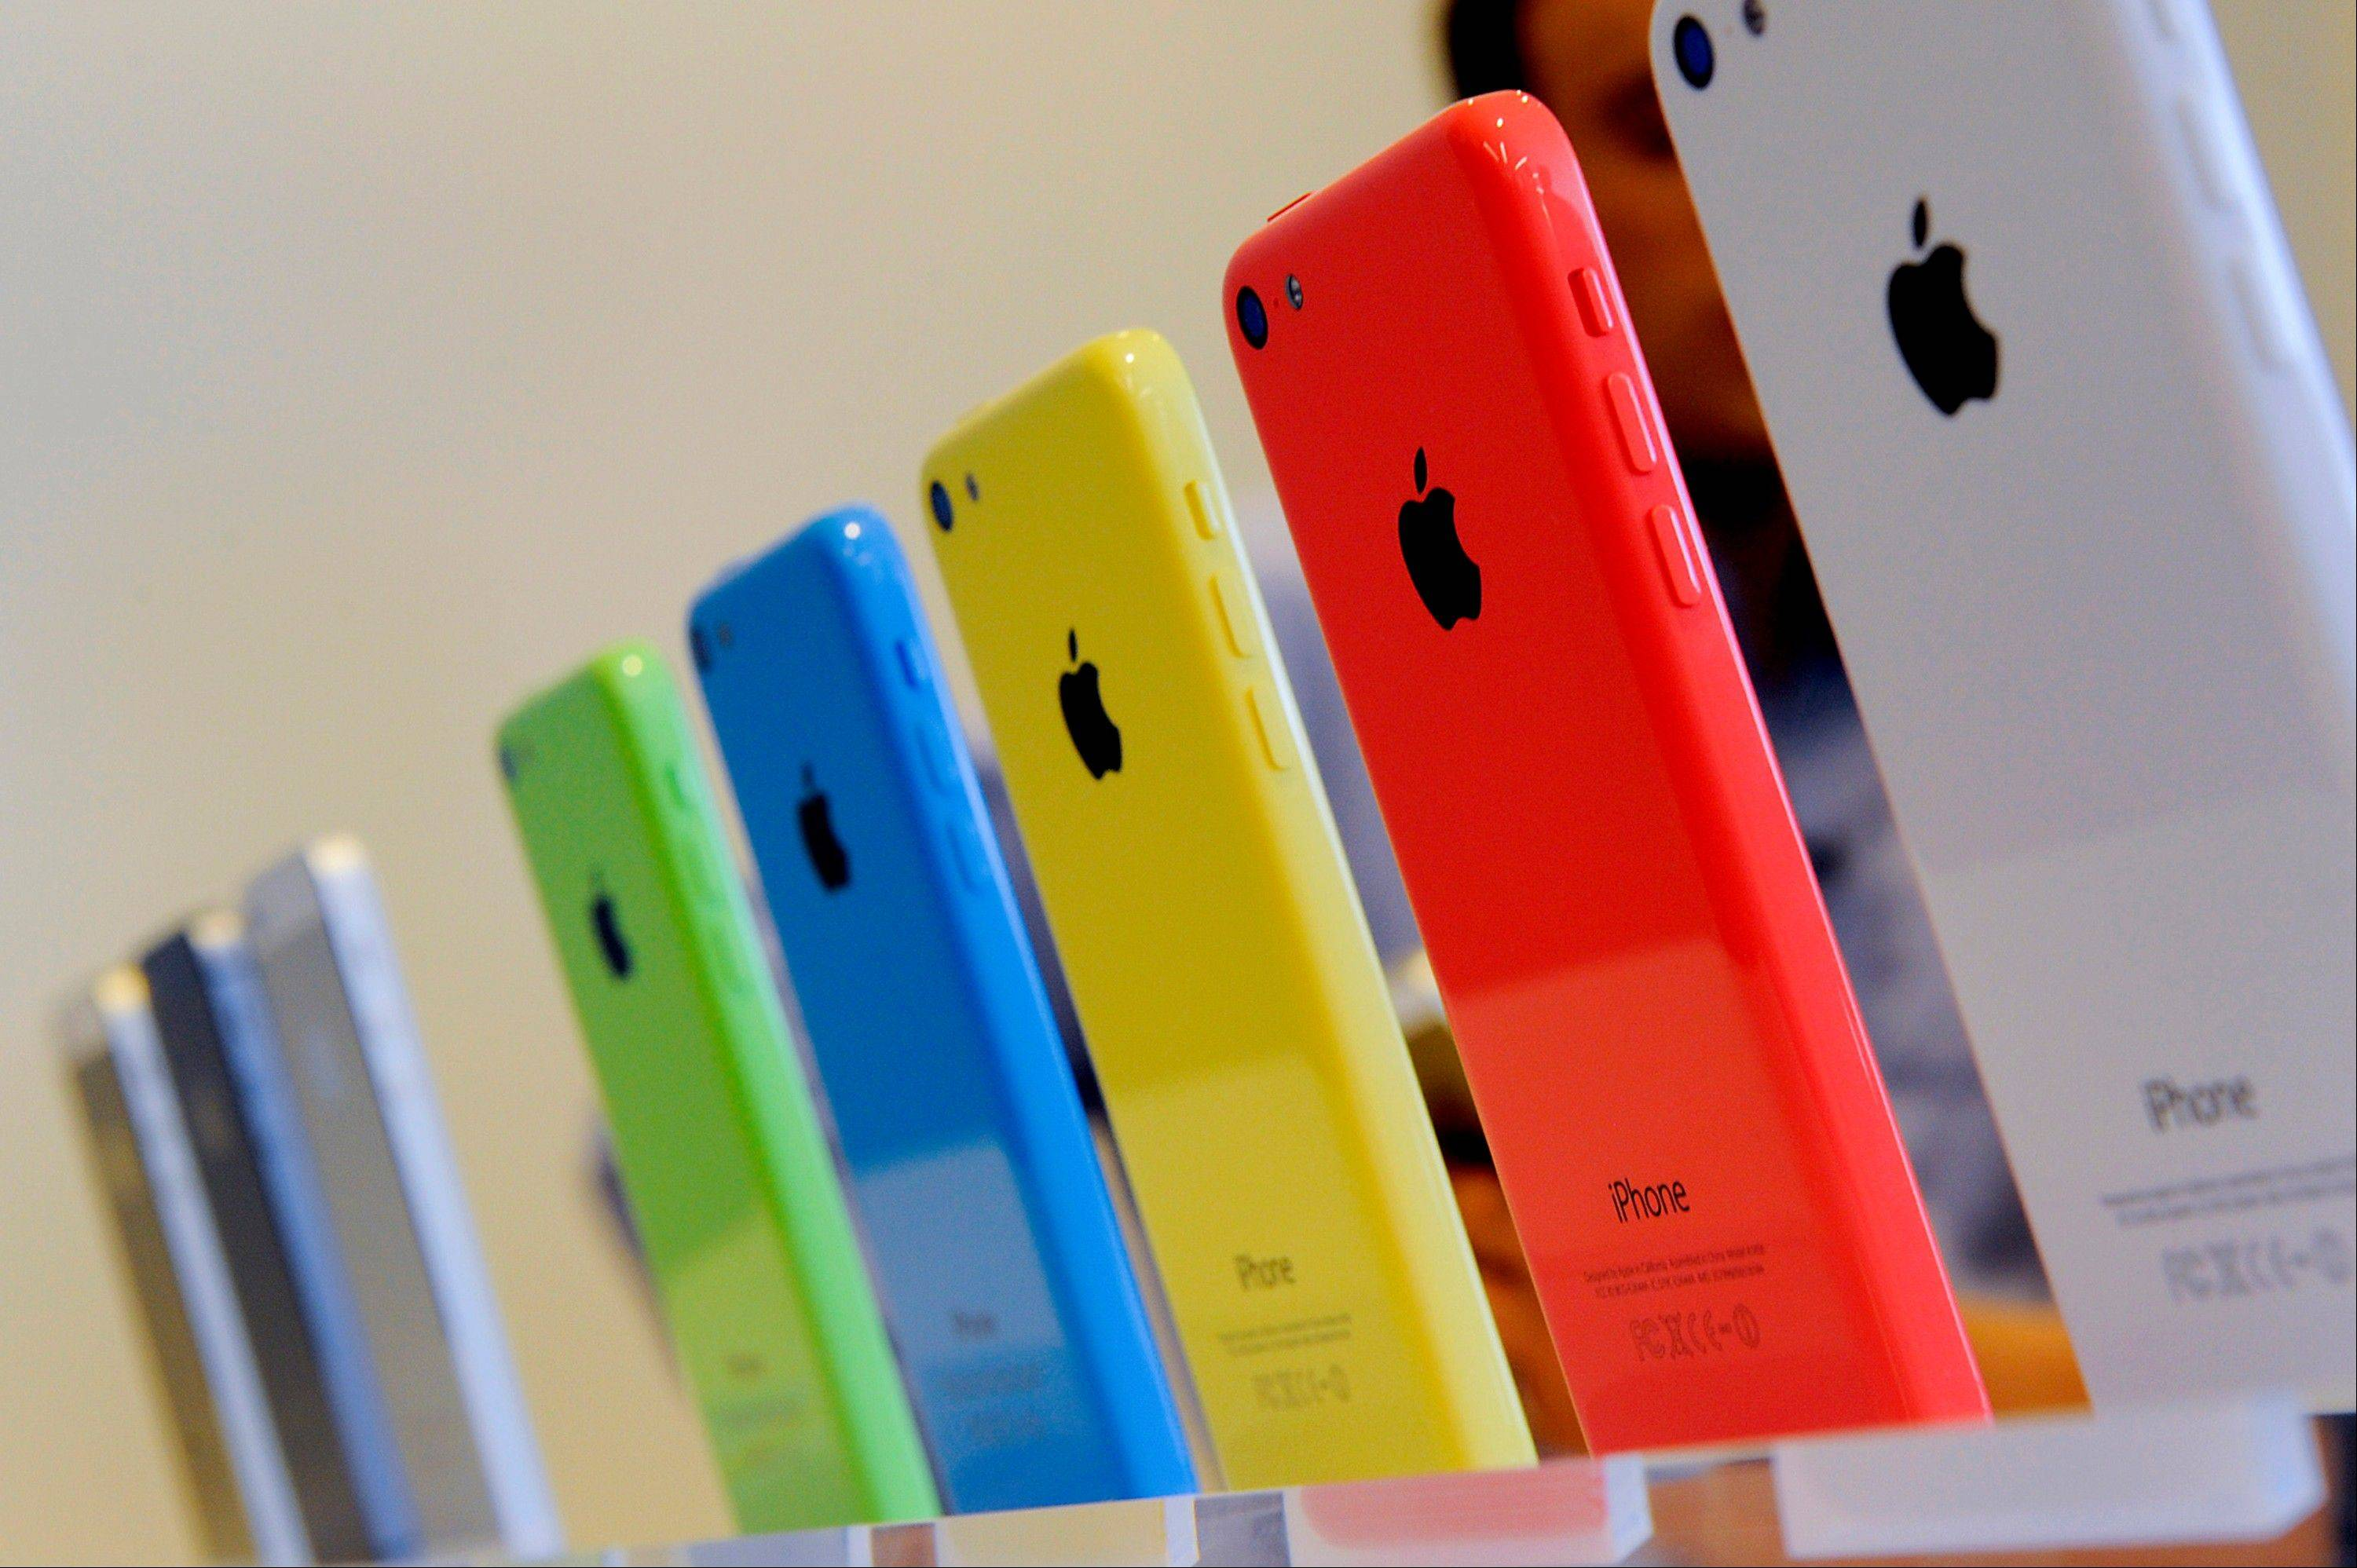 The new Apple Inc. iPhone 5C sit on display Tuesday during a product announcement in Cupertino, California, U.S. Apple Inc. announced two new iPhones including one with lower prices and more color options, in a strategy shift by Cook to reach a broader range of customers around the world.